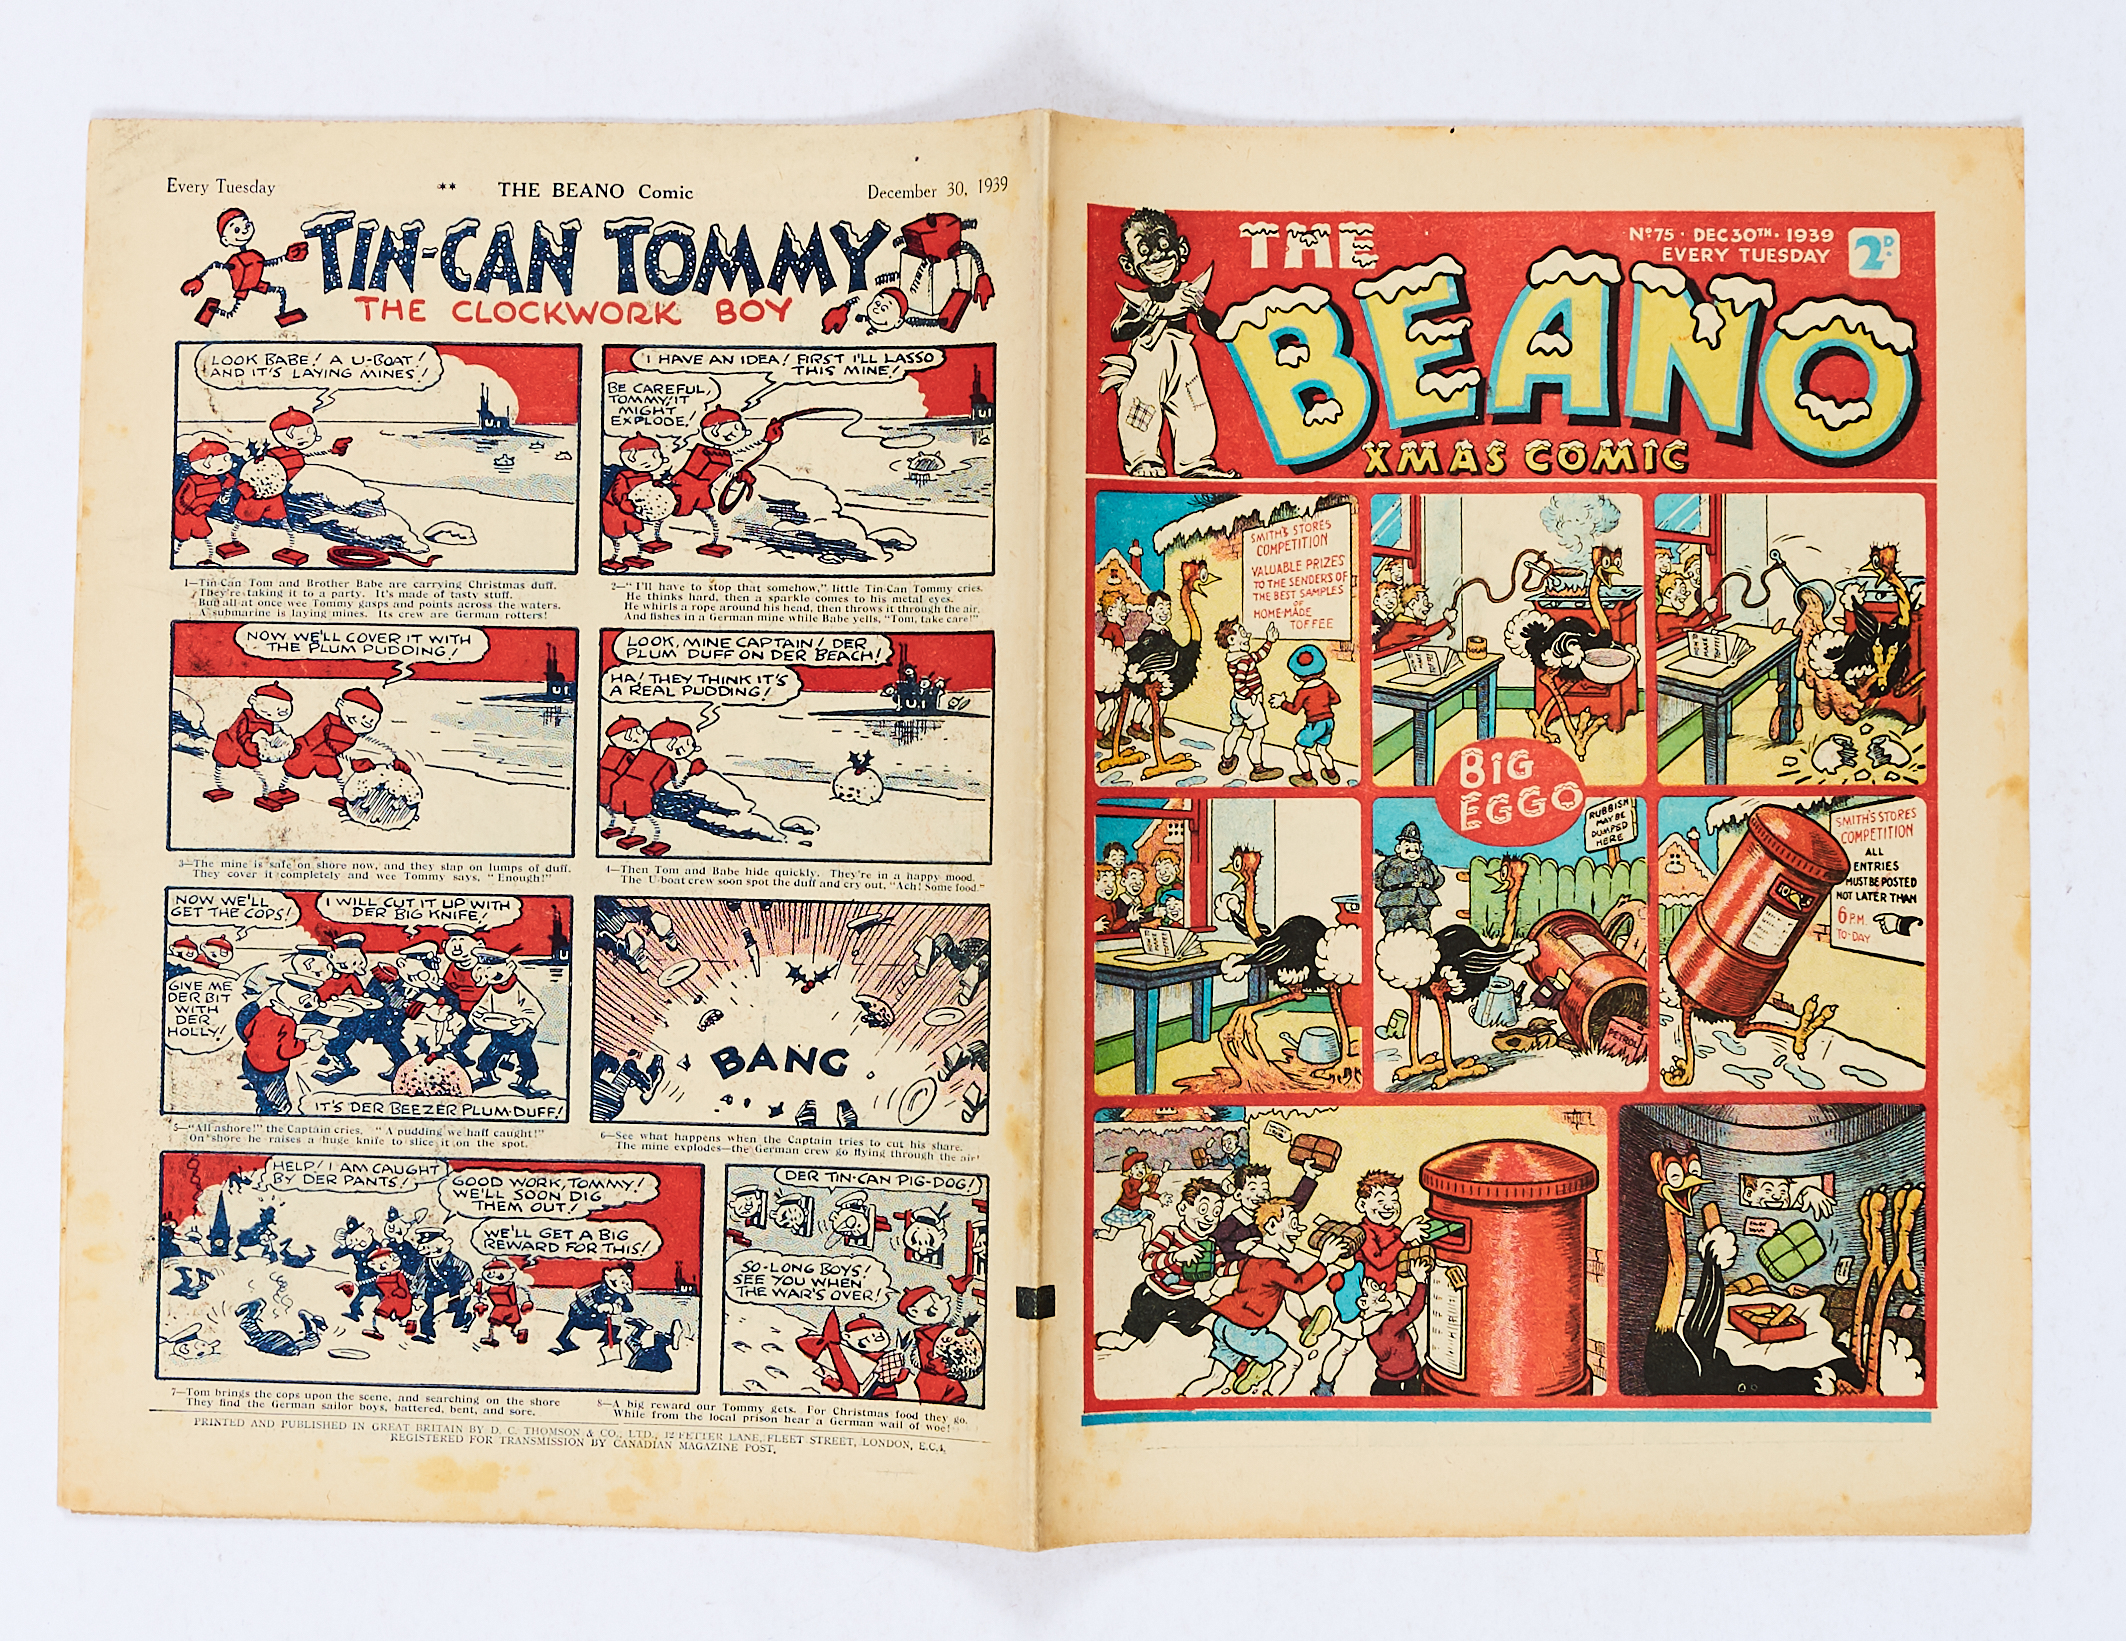 Lot 26 - Beano 75 (1939) Second Xmas Comic. Propaganda war issues. Hooky's Magic Bowler Hat brings Hitler